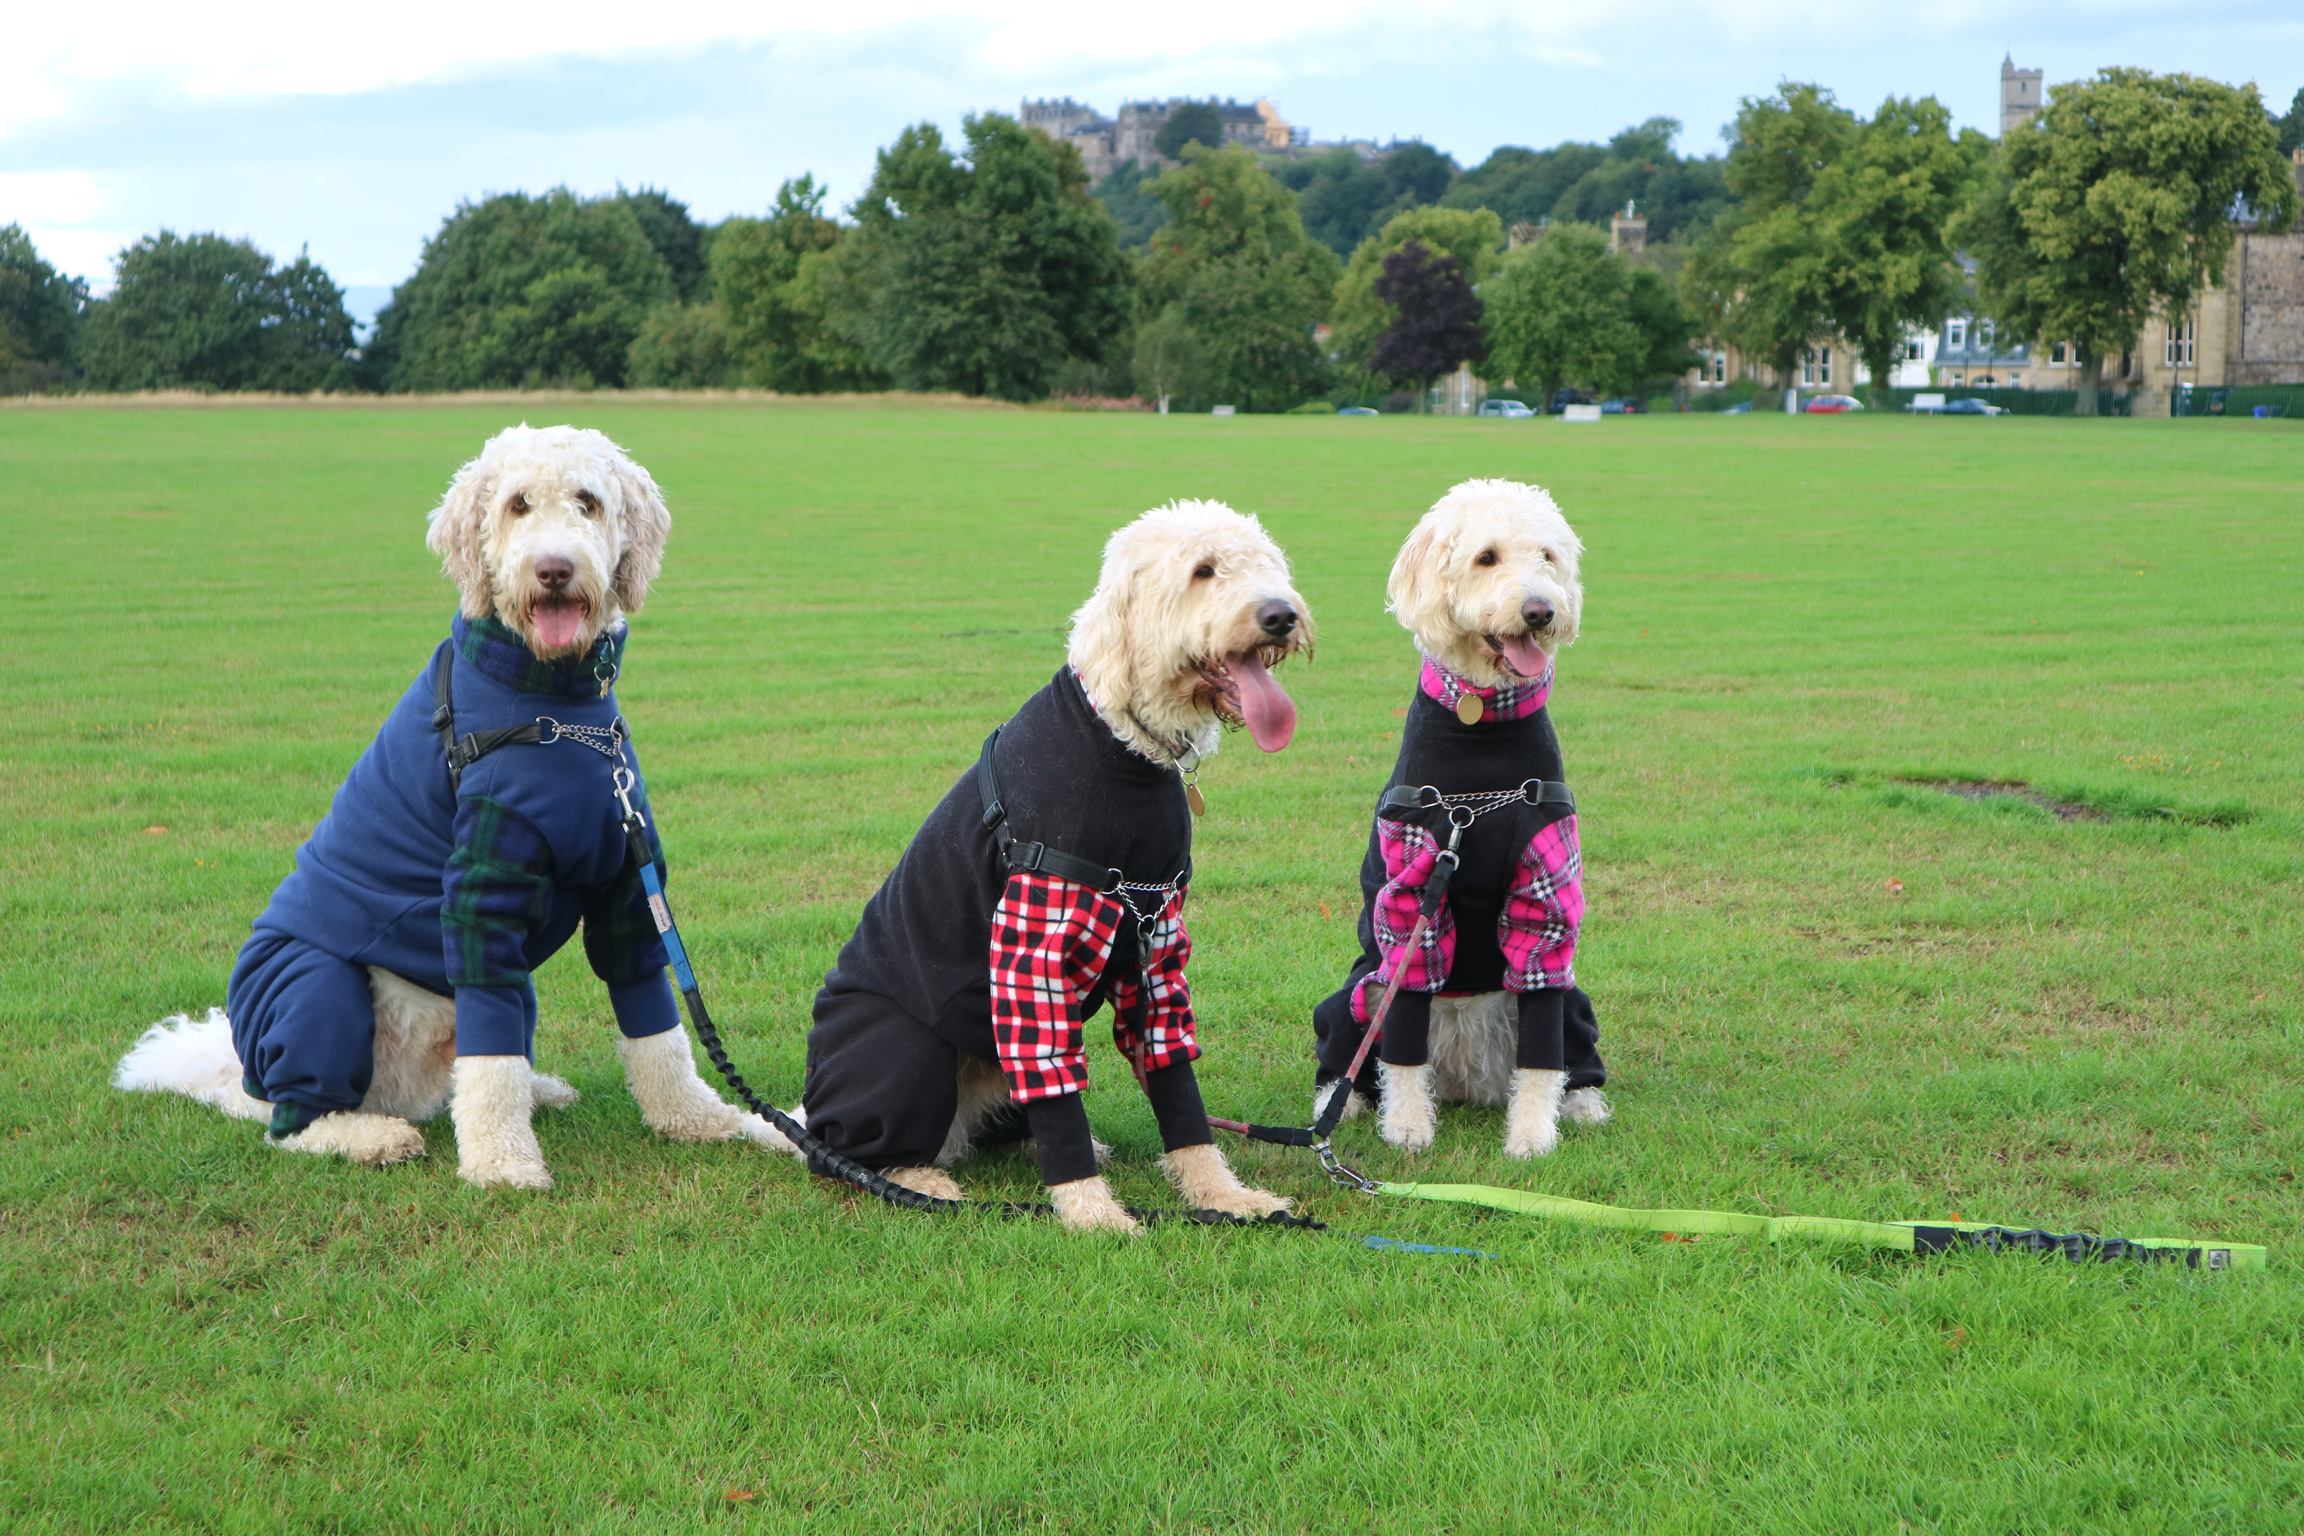 Angus, Hamish and Daisy resting in the King's Park, Stirling after a busy modelling session in some Mucki Mutz body suits!!